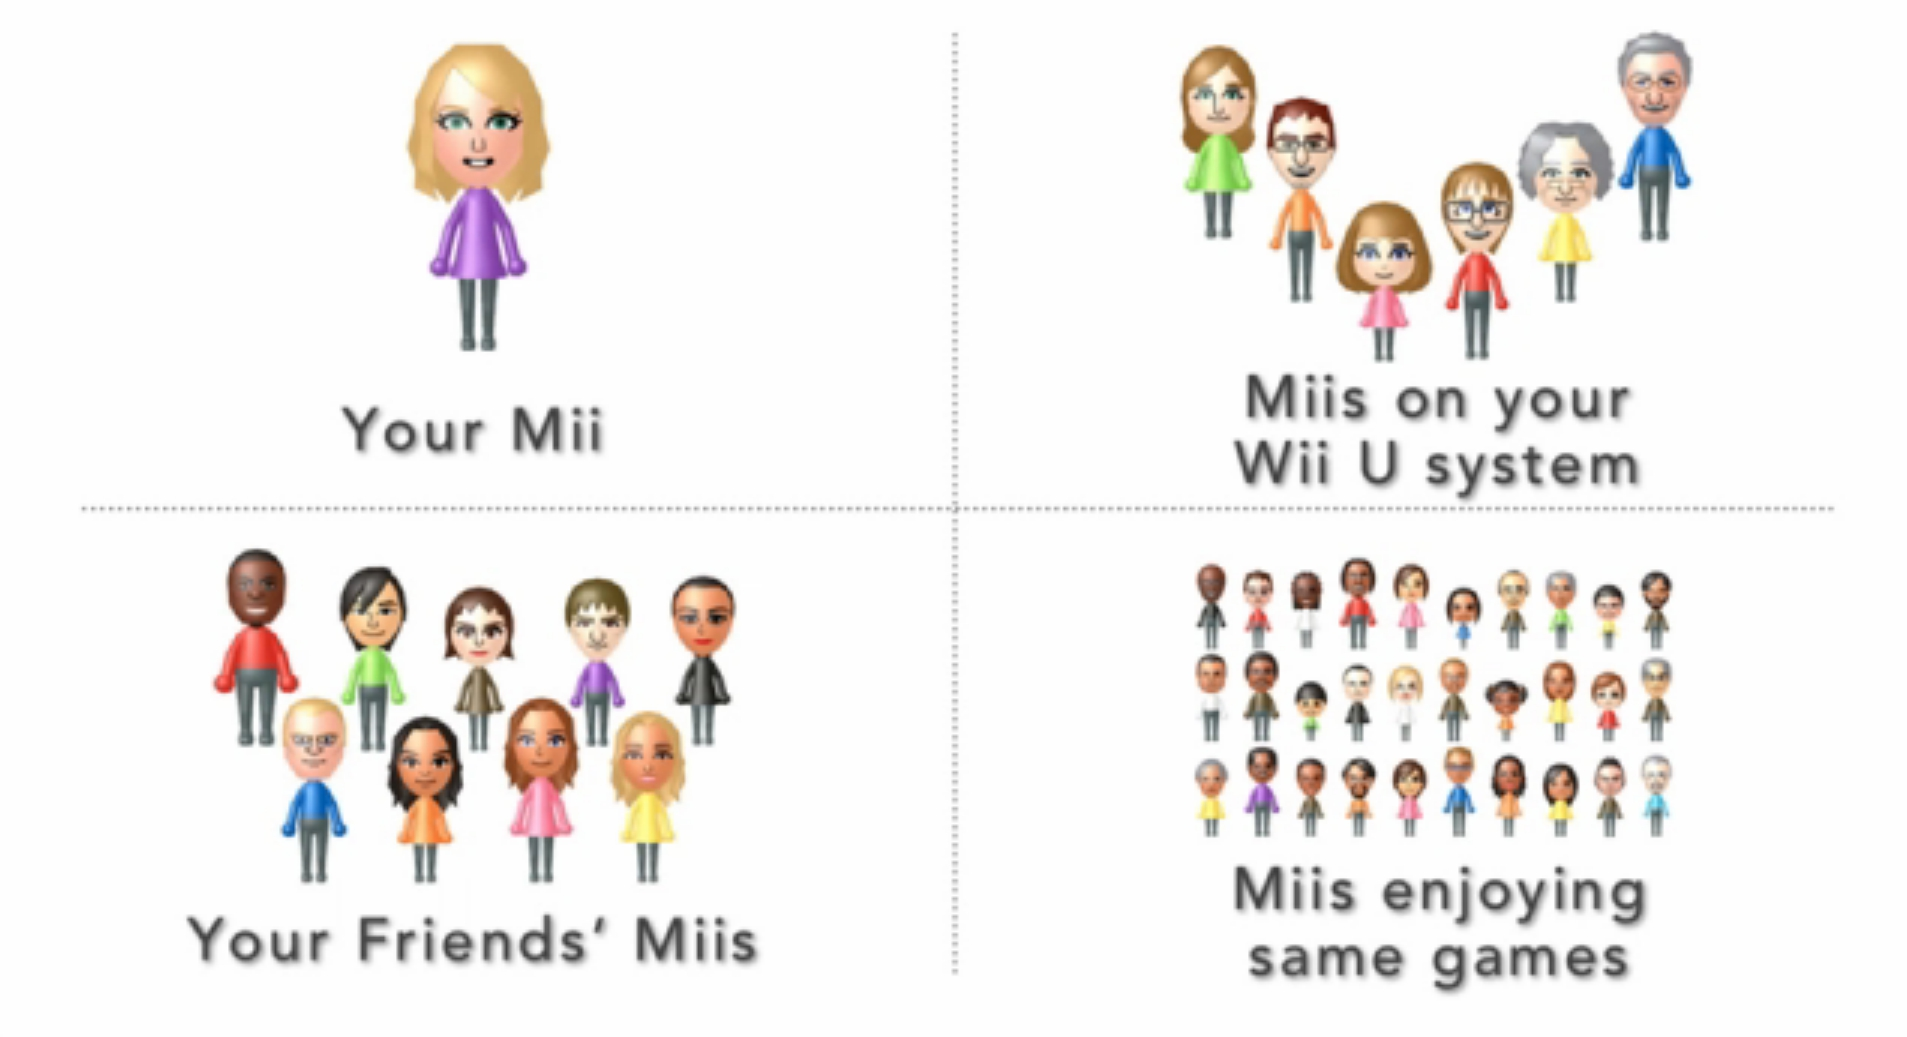 Wii Games With Mii Integration